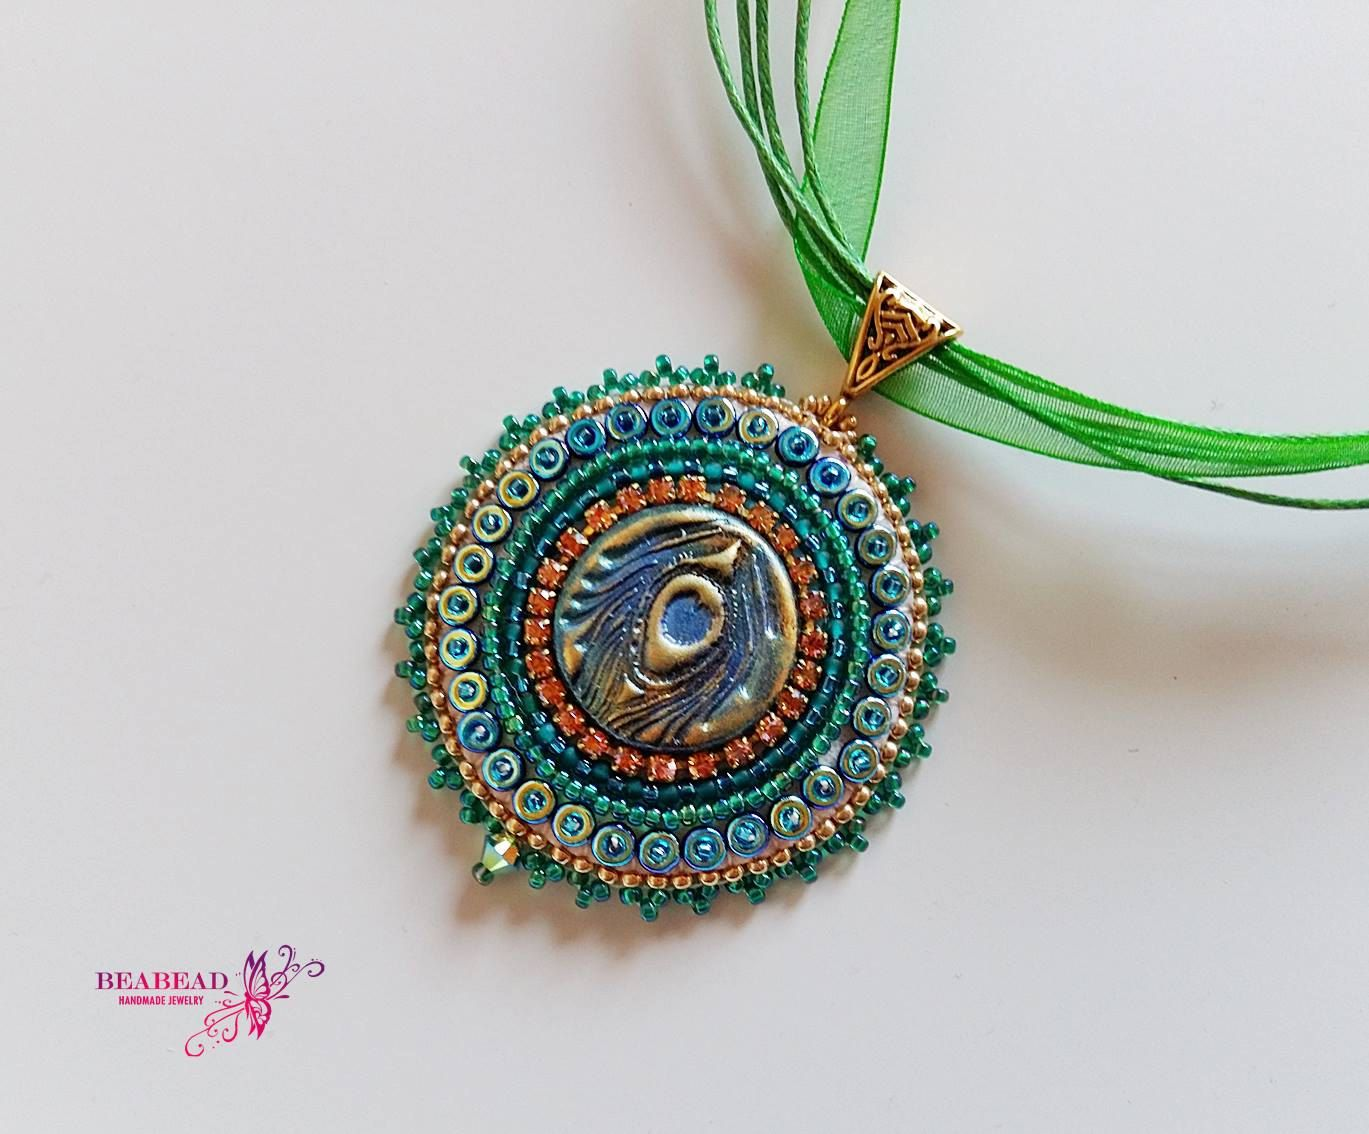 105 best beabead handmade jewellery images on pinterest handmade 105 best beabead handmade jewellery images on pinterest handmade jewellery beaded embroidery and bead embroidery jewelry audiocablefo